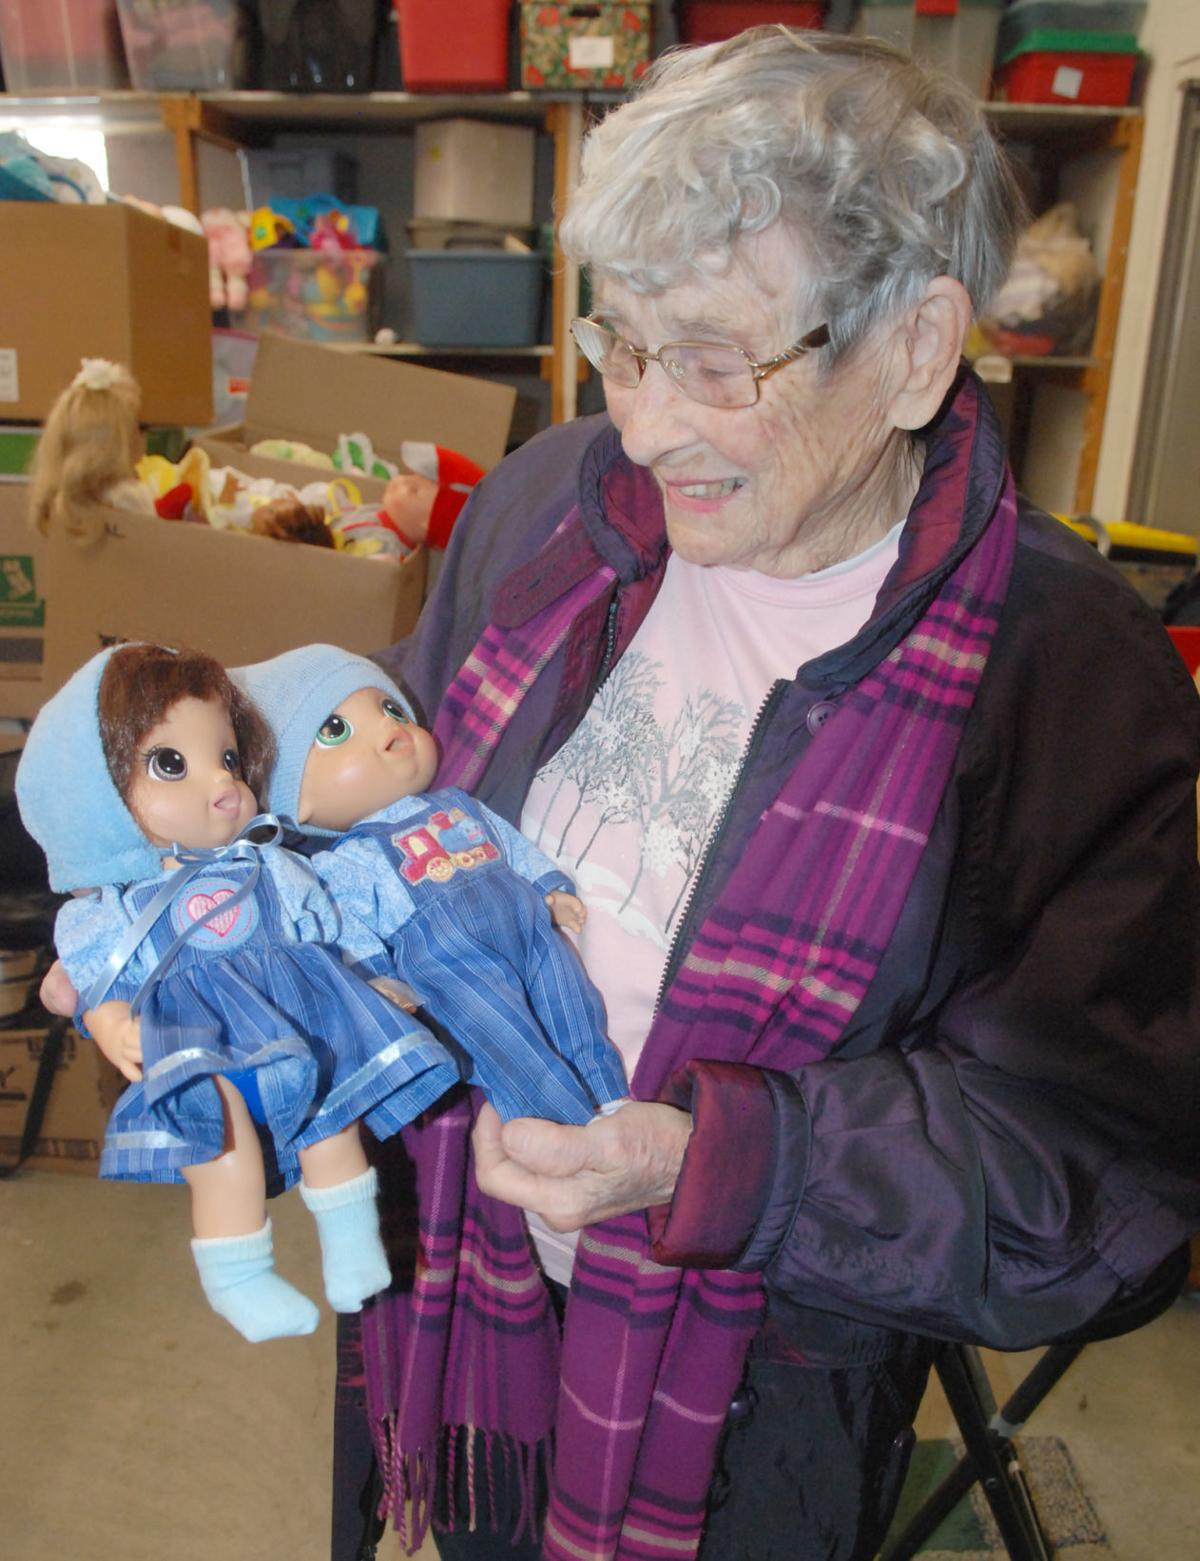 Woman looking down at set of dolls in blue